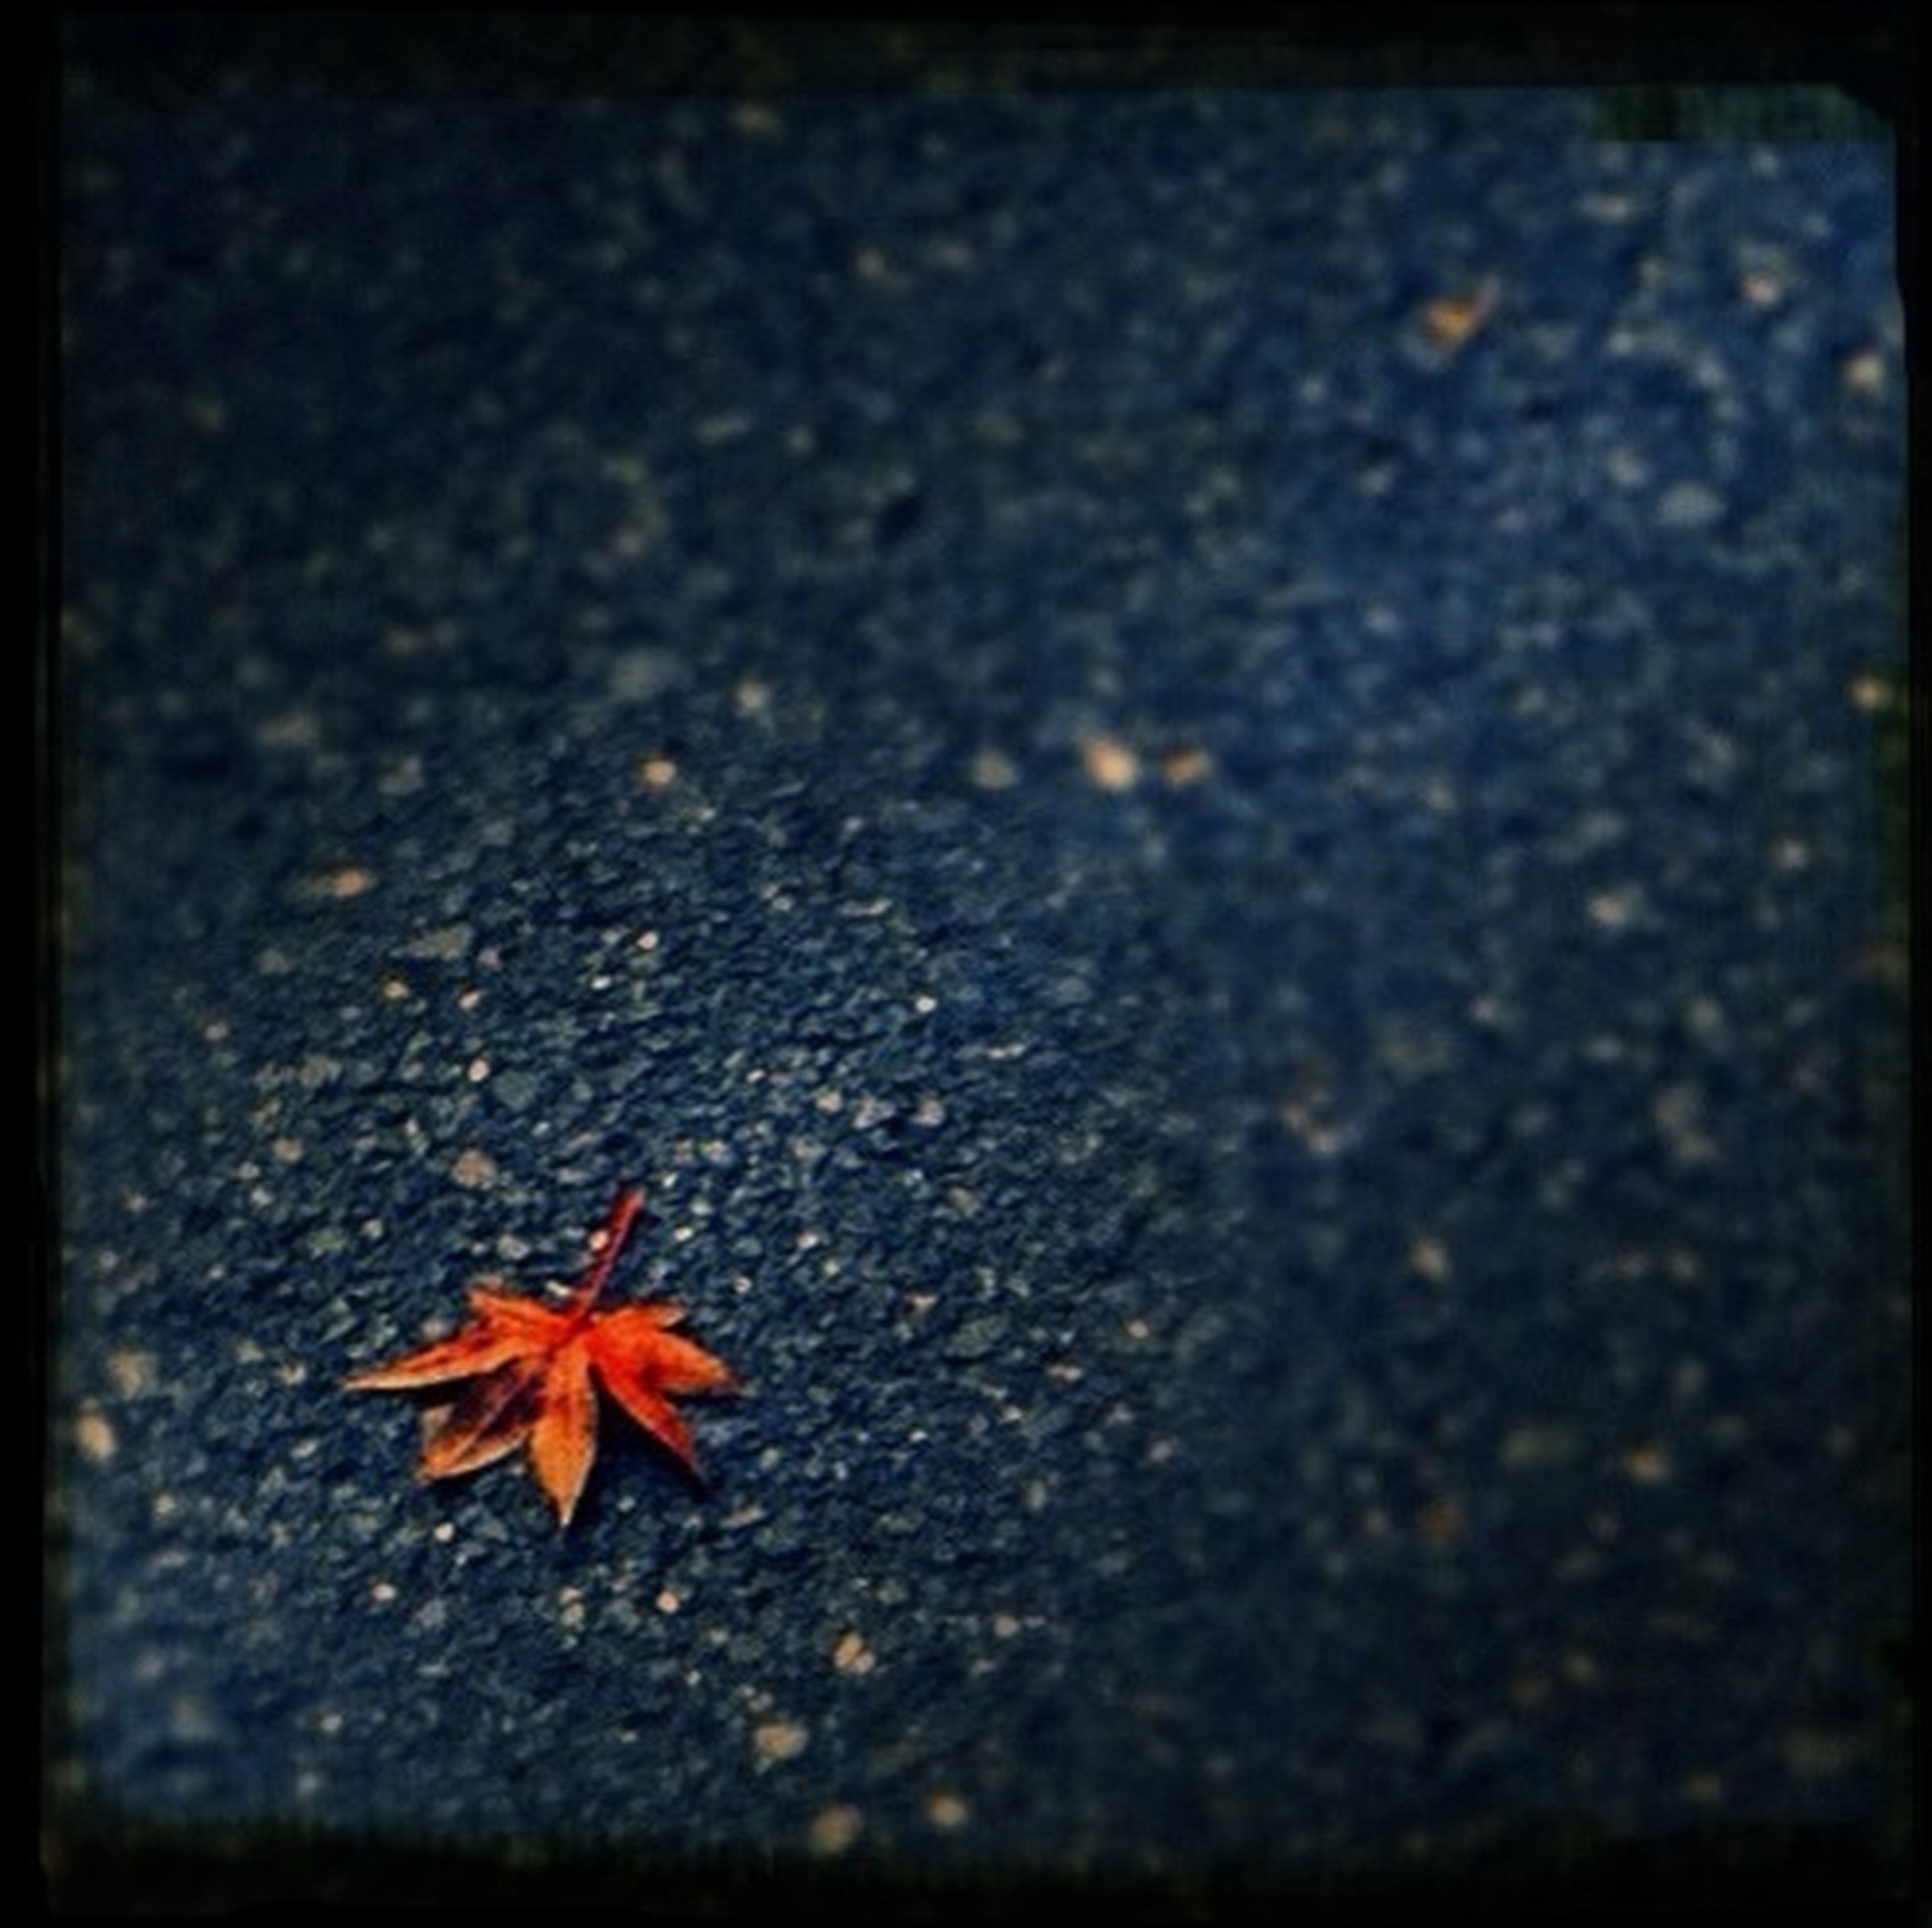 leaf, high angle view, dry, close-up, autumn, fallen, asphalt, nature, fragility, change, ground, selective focus, textured, street, no people, outdoors, season, orange color, day, road